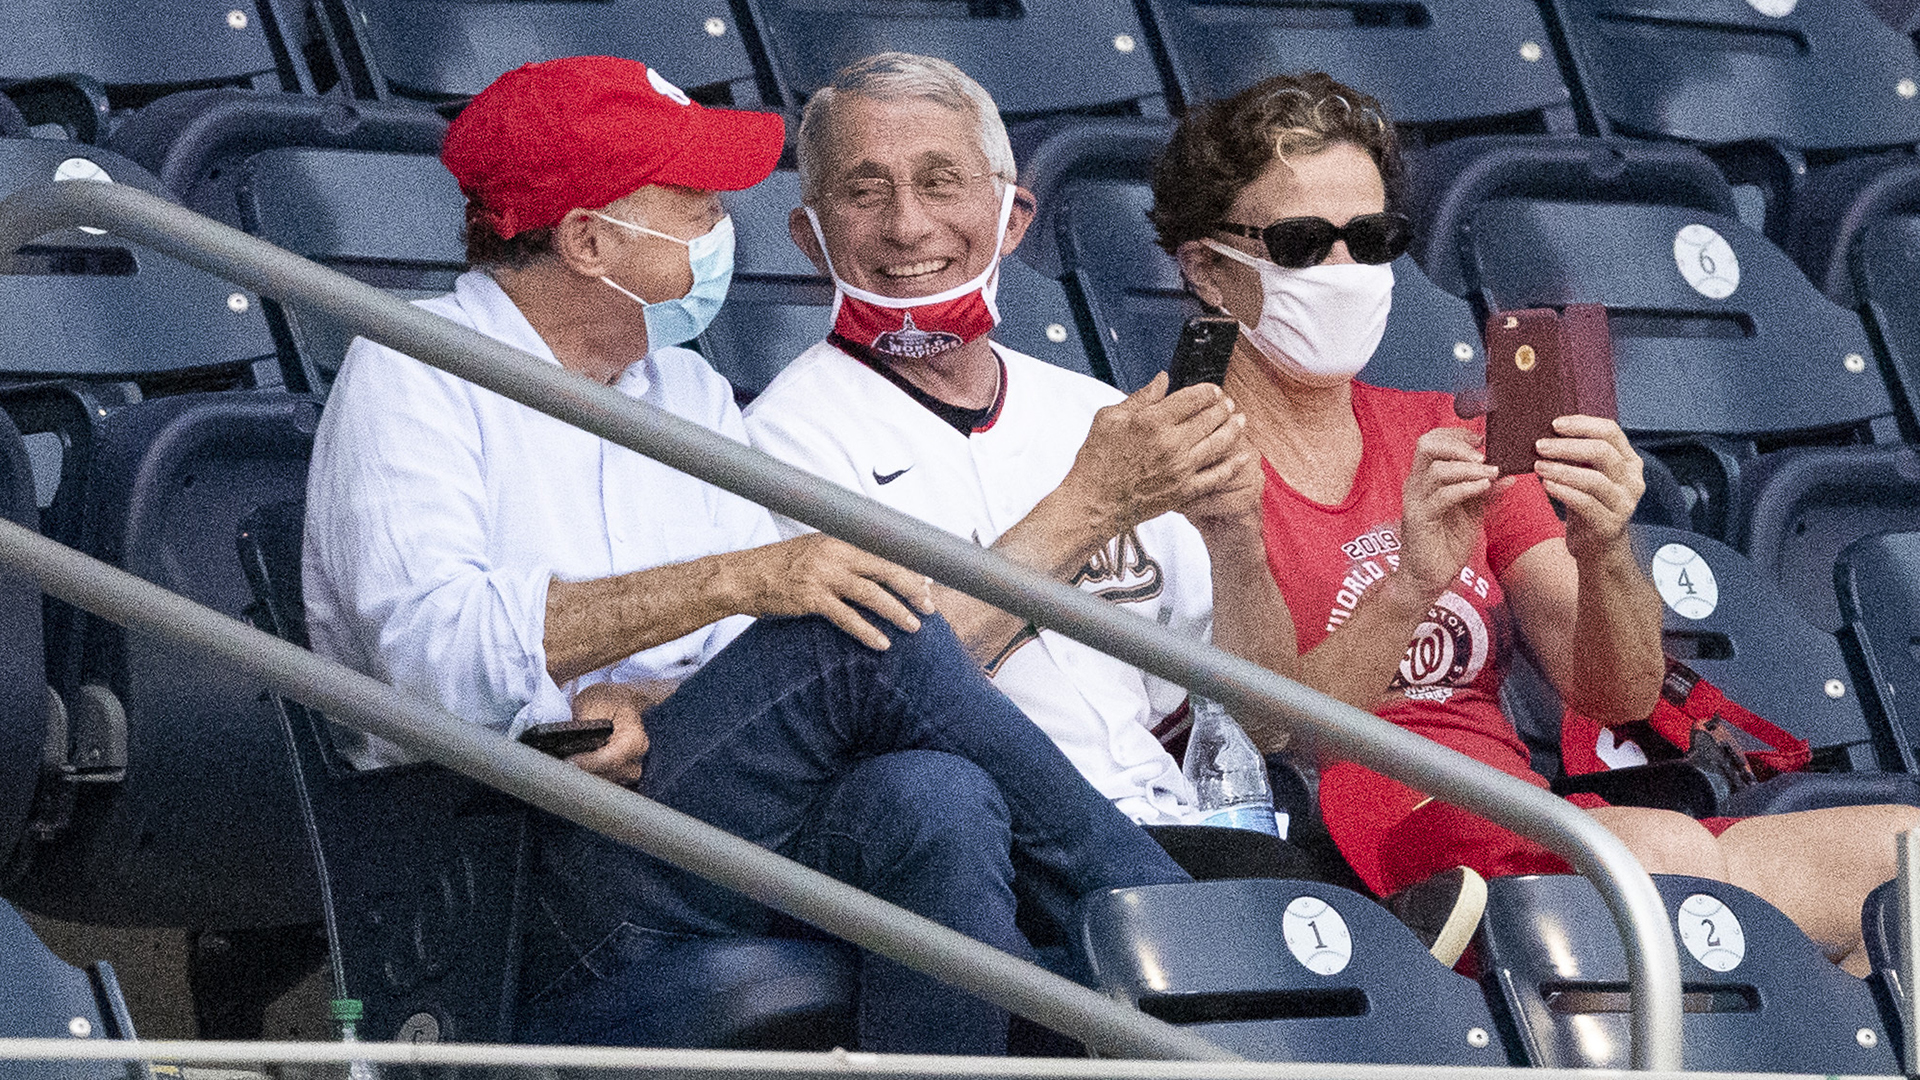 Photo of Fauci with face mask down draws jeers. He fires back. | wusa9.com